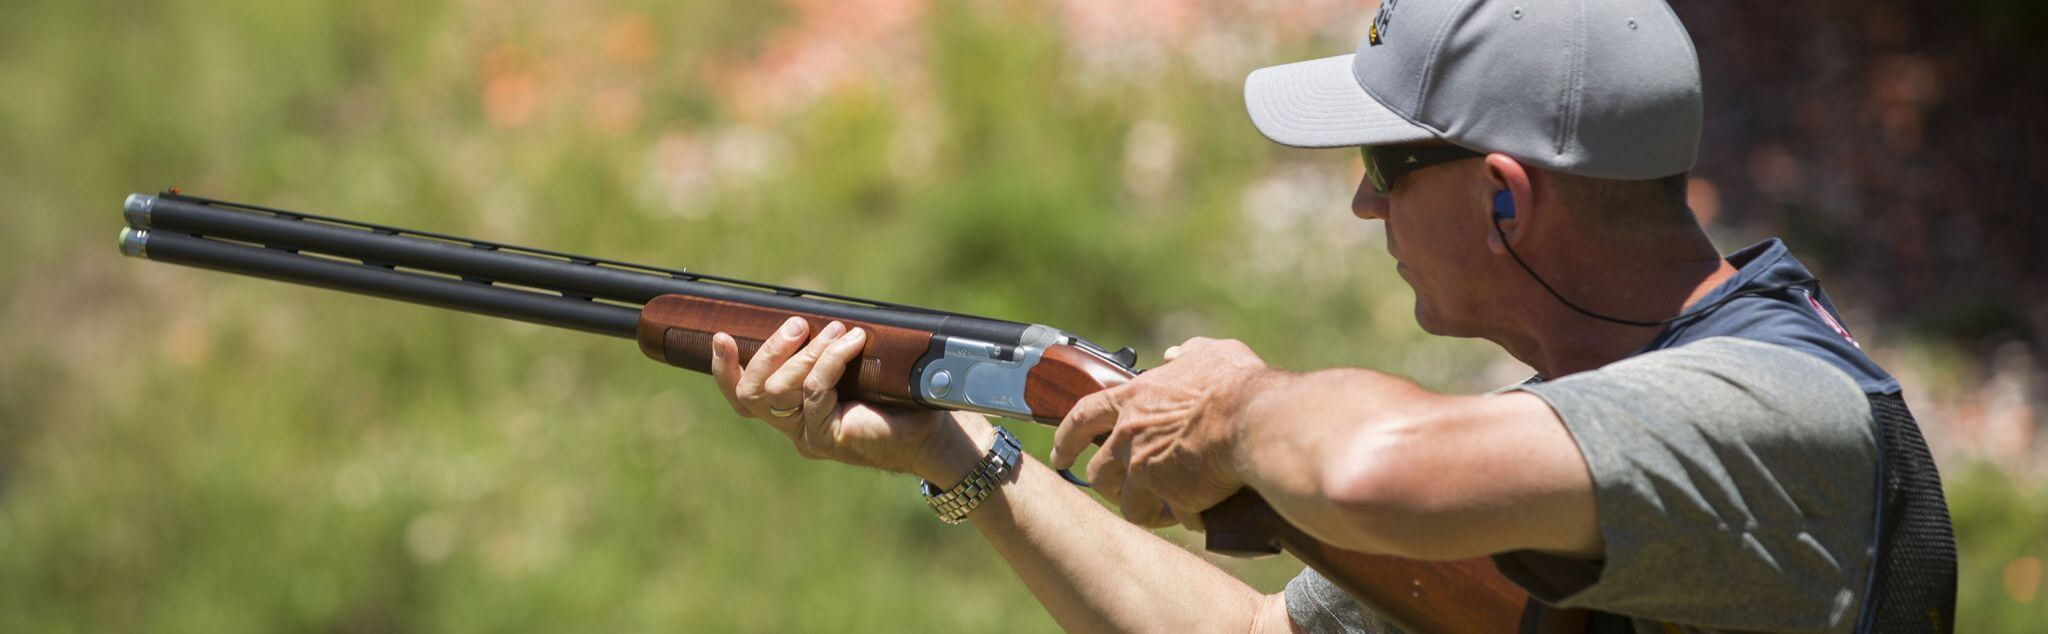 Clay Pigeon Shooting in Isle of Wight